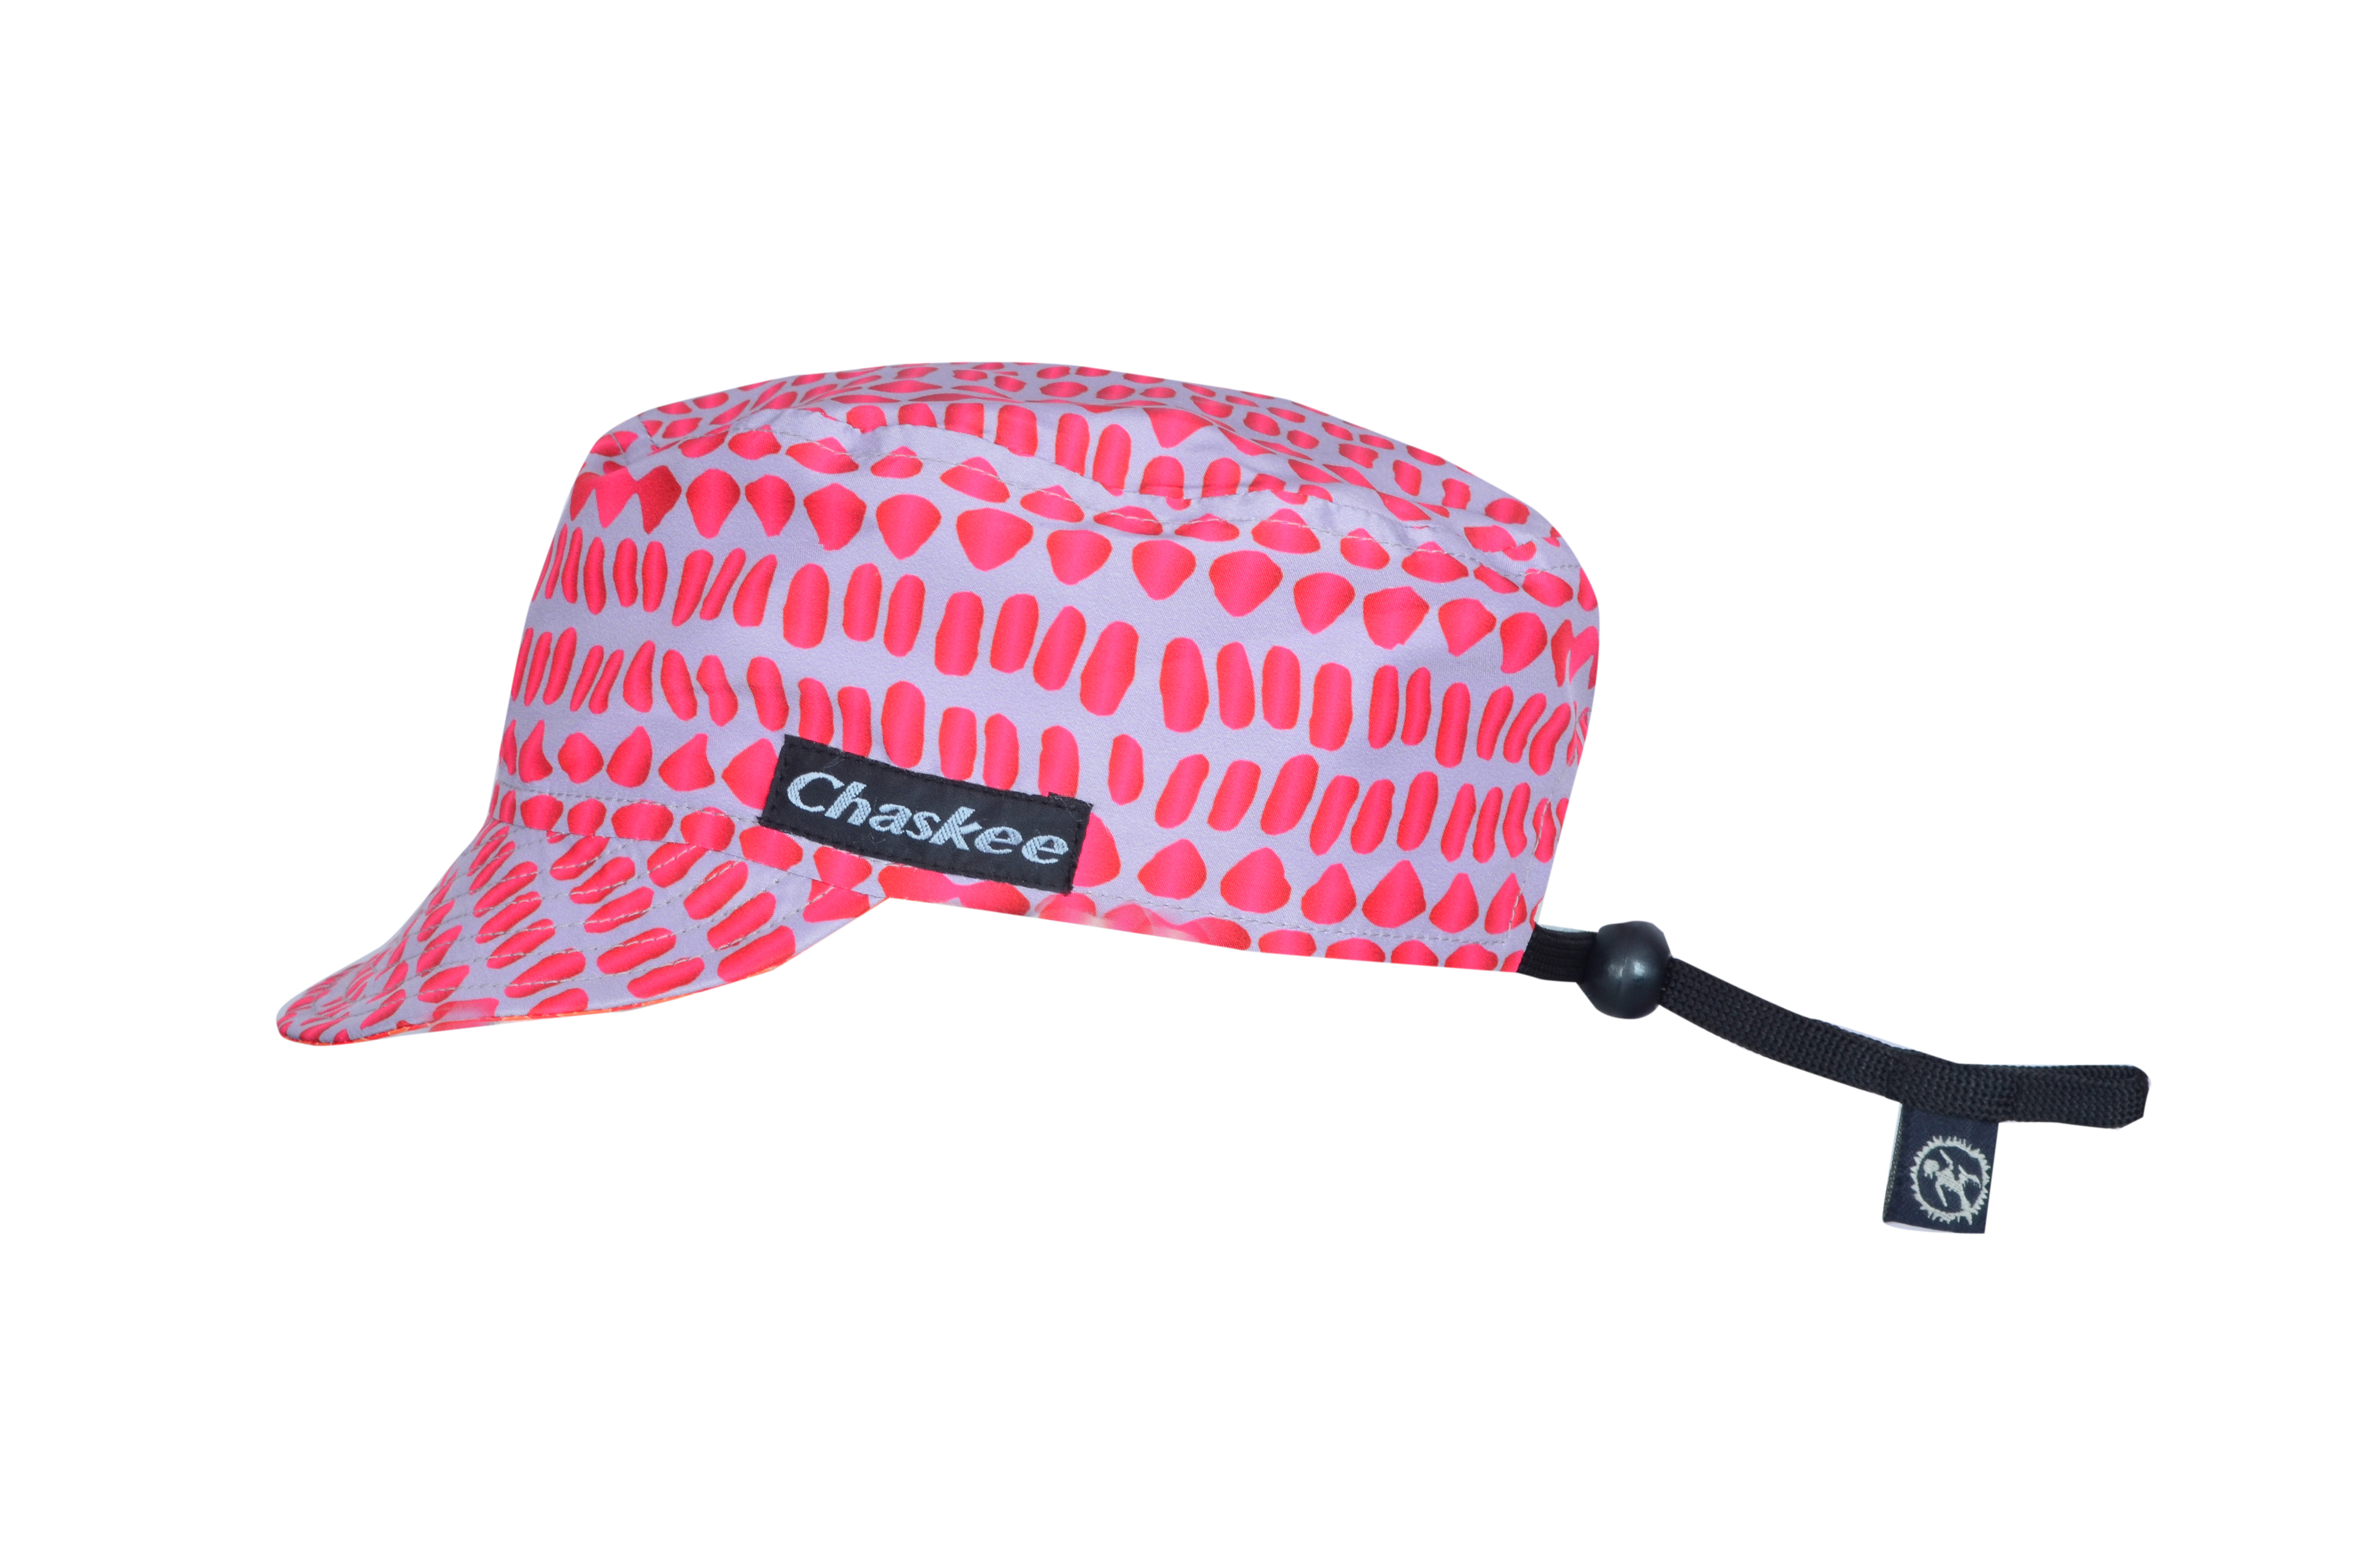 Chaskee Junior Rev Cap - Kinder Wendekappe pink